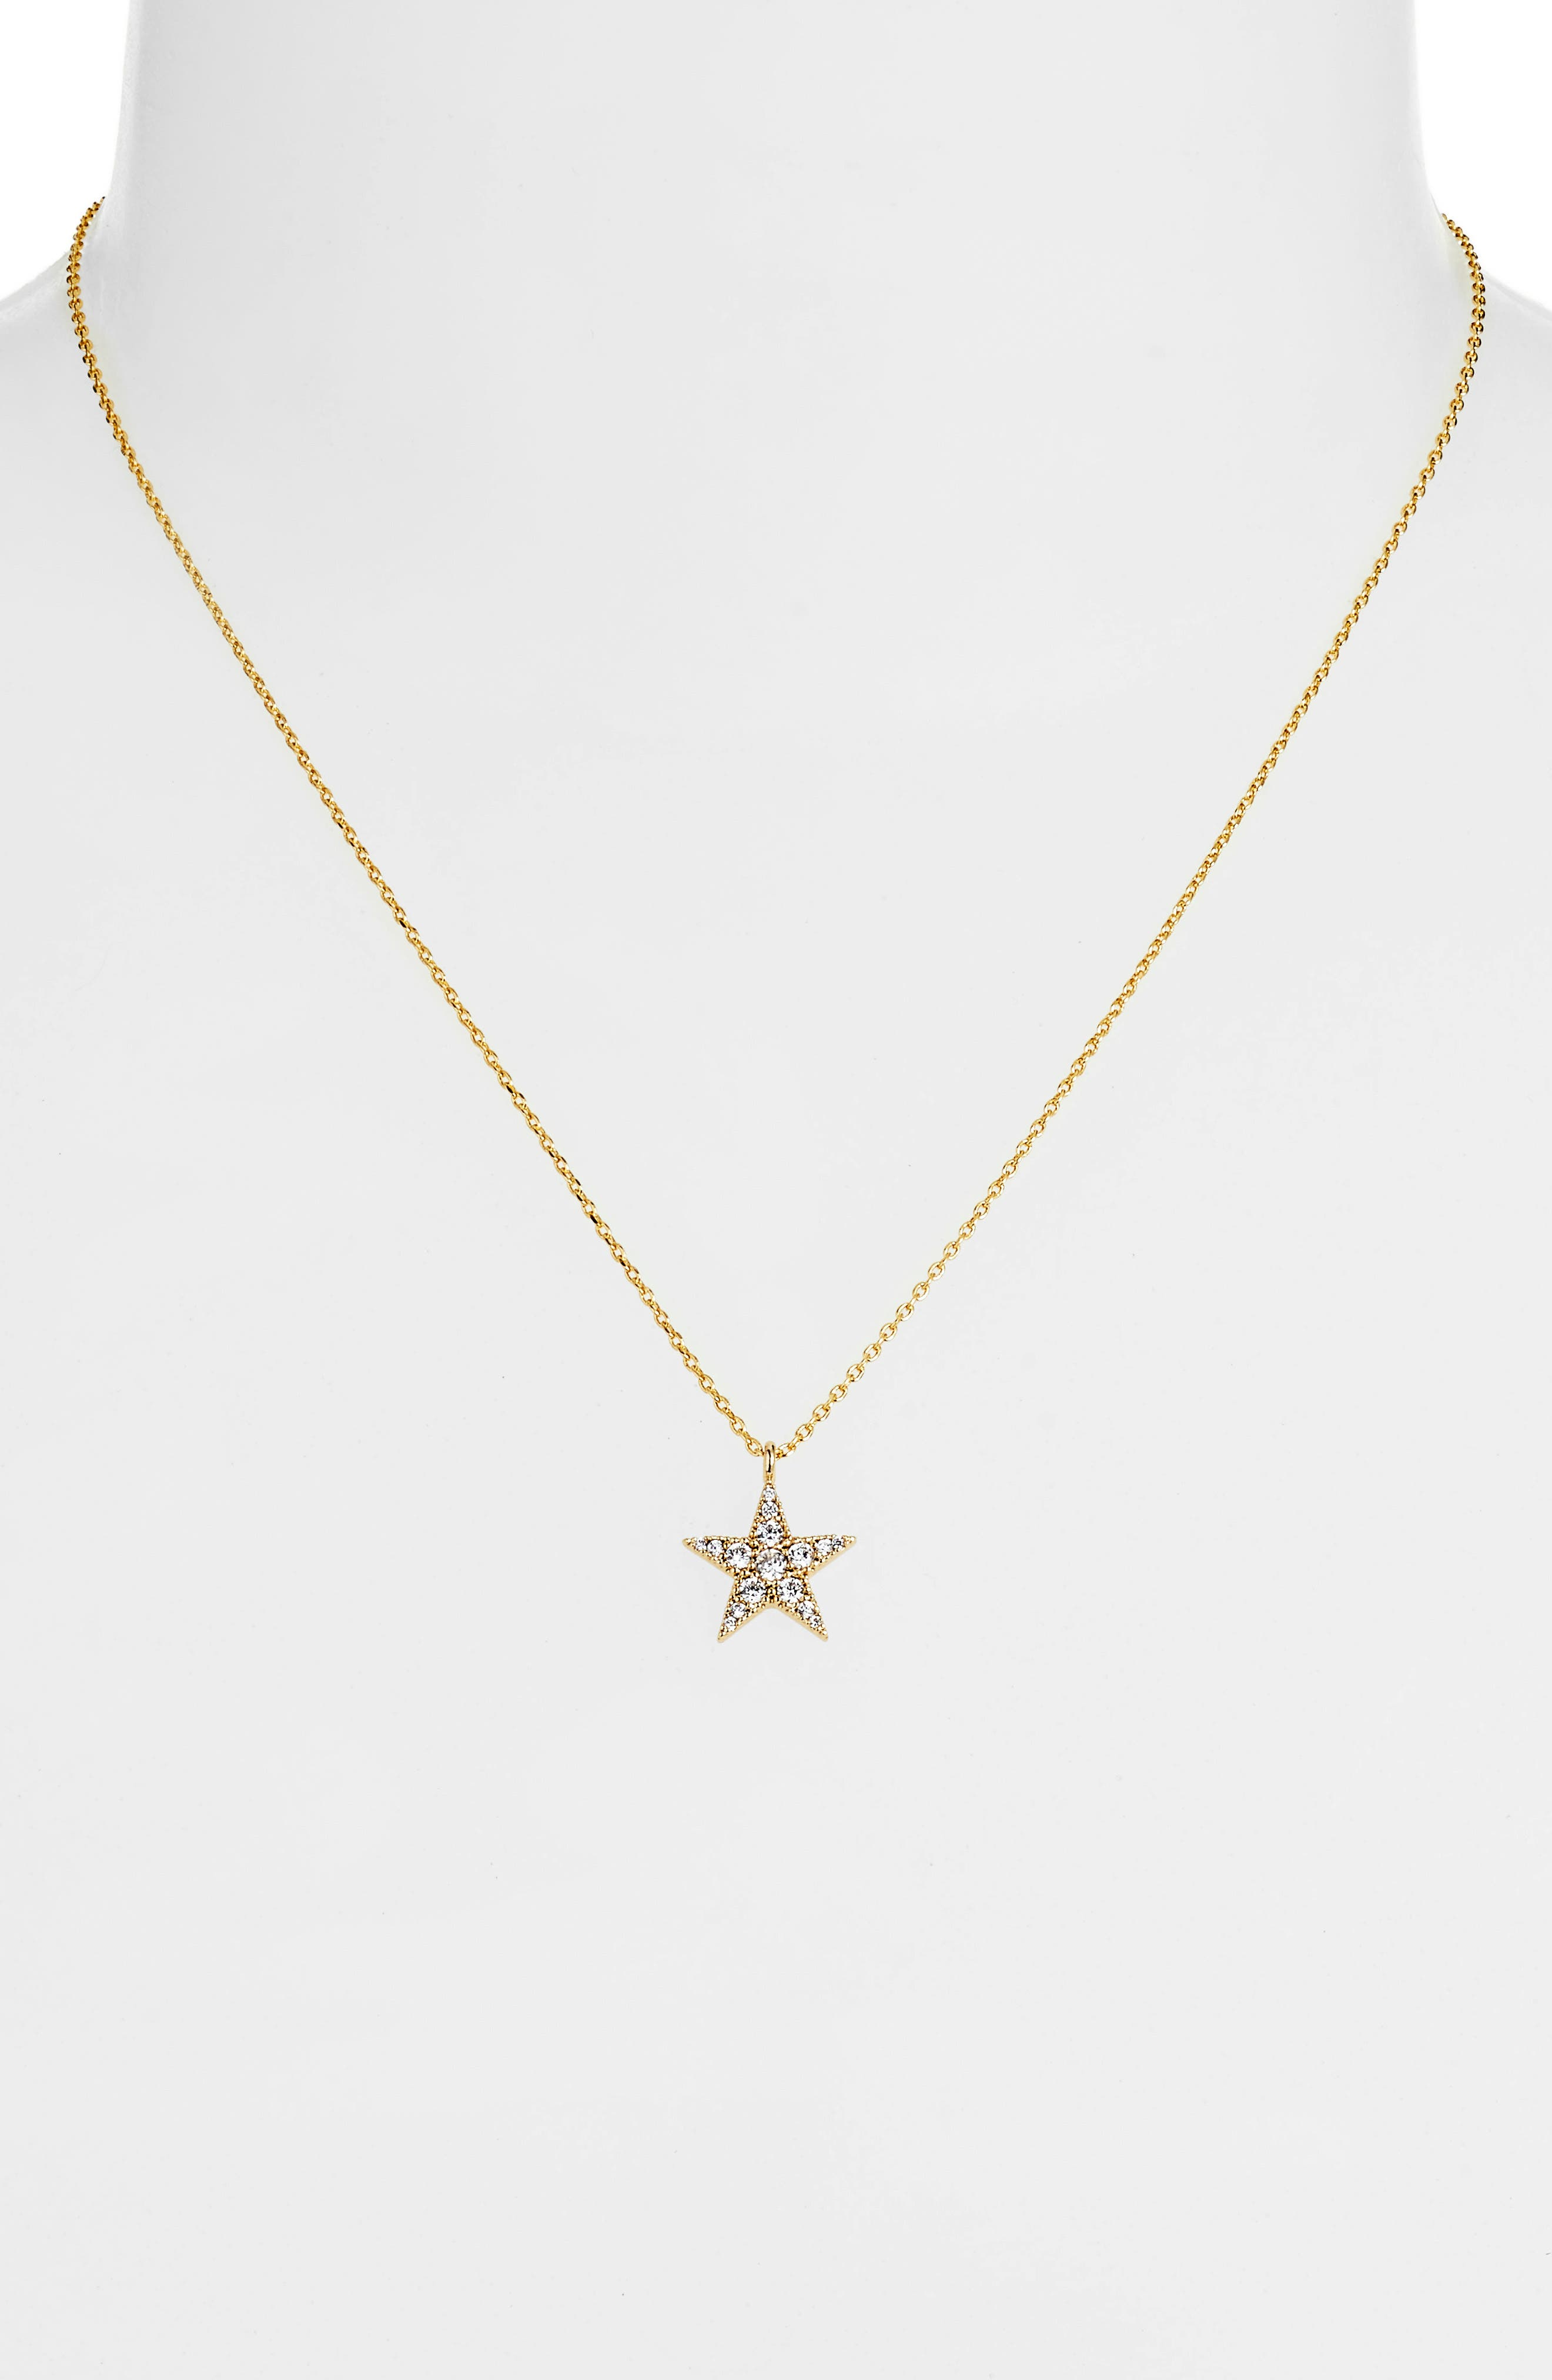 Granulated Star Necklace,                             Alternate thumbnail 2, color,                             GOLD CZ/ GUNMETAL